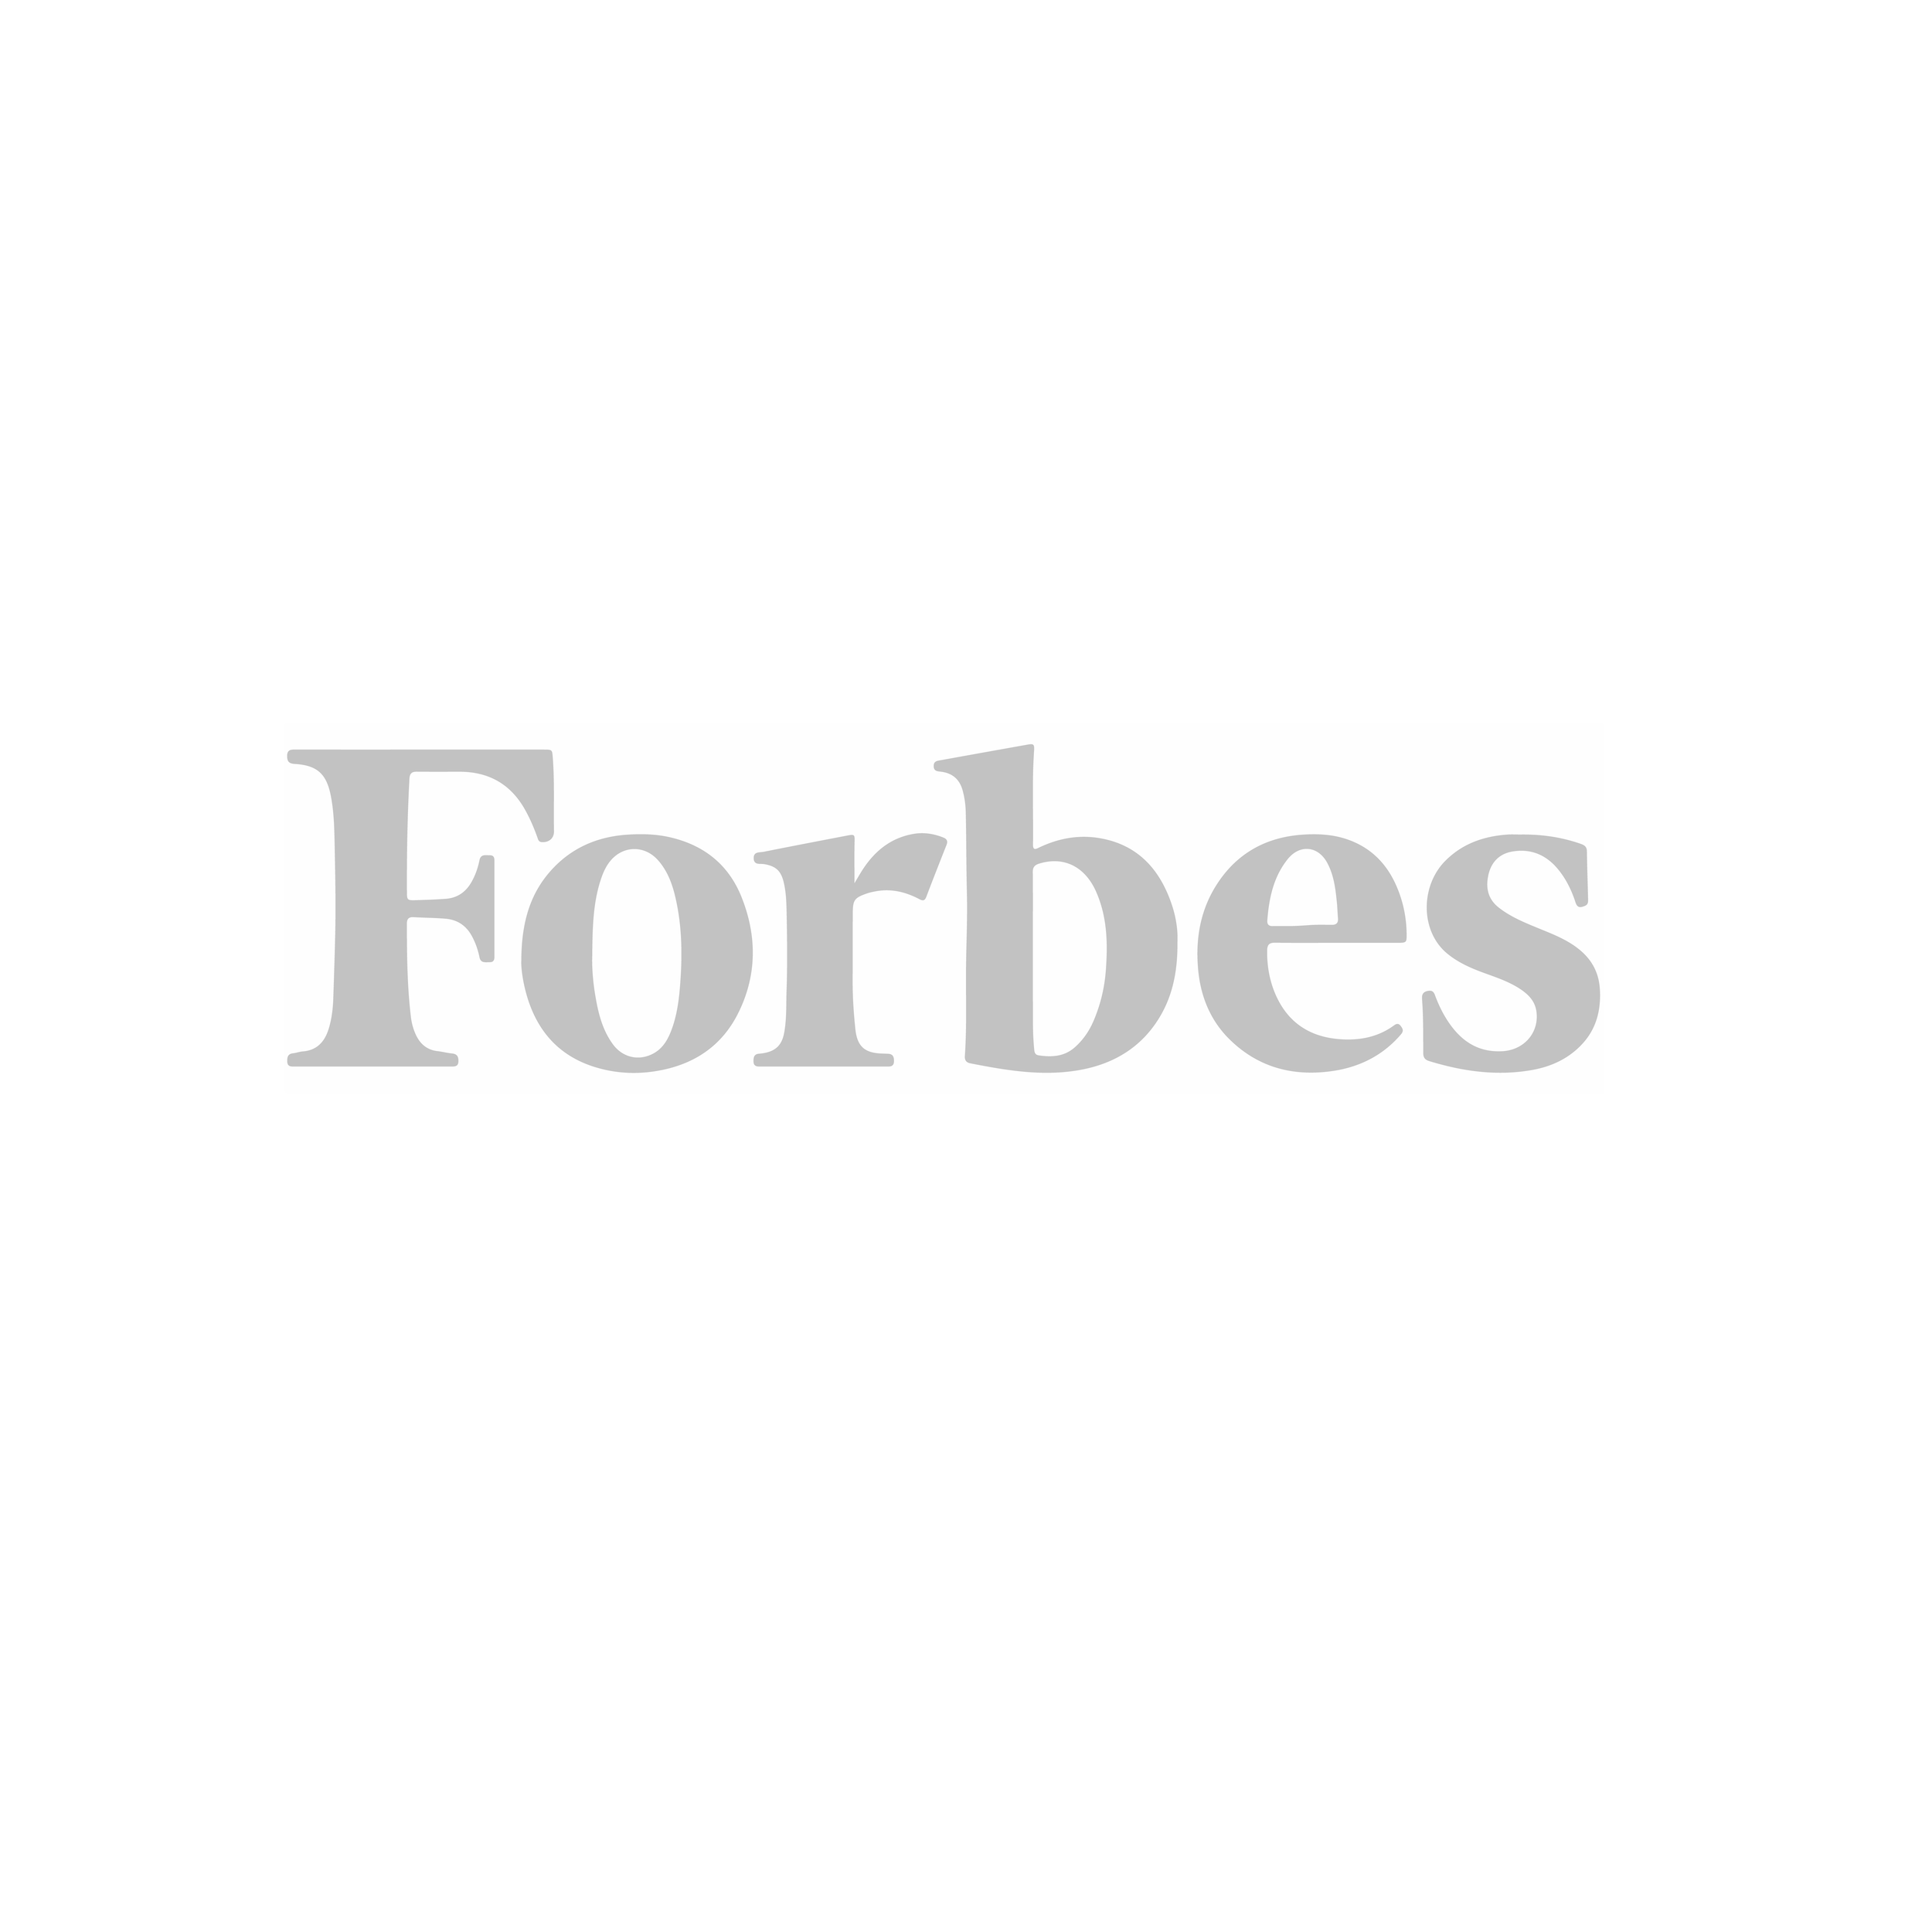 Forbes_Logo_SHEFACTOR_Sq.png